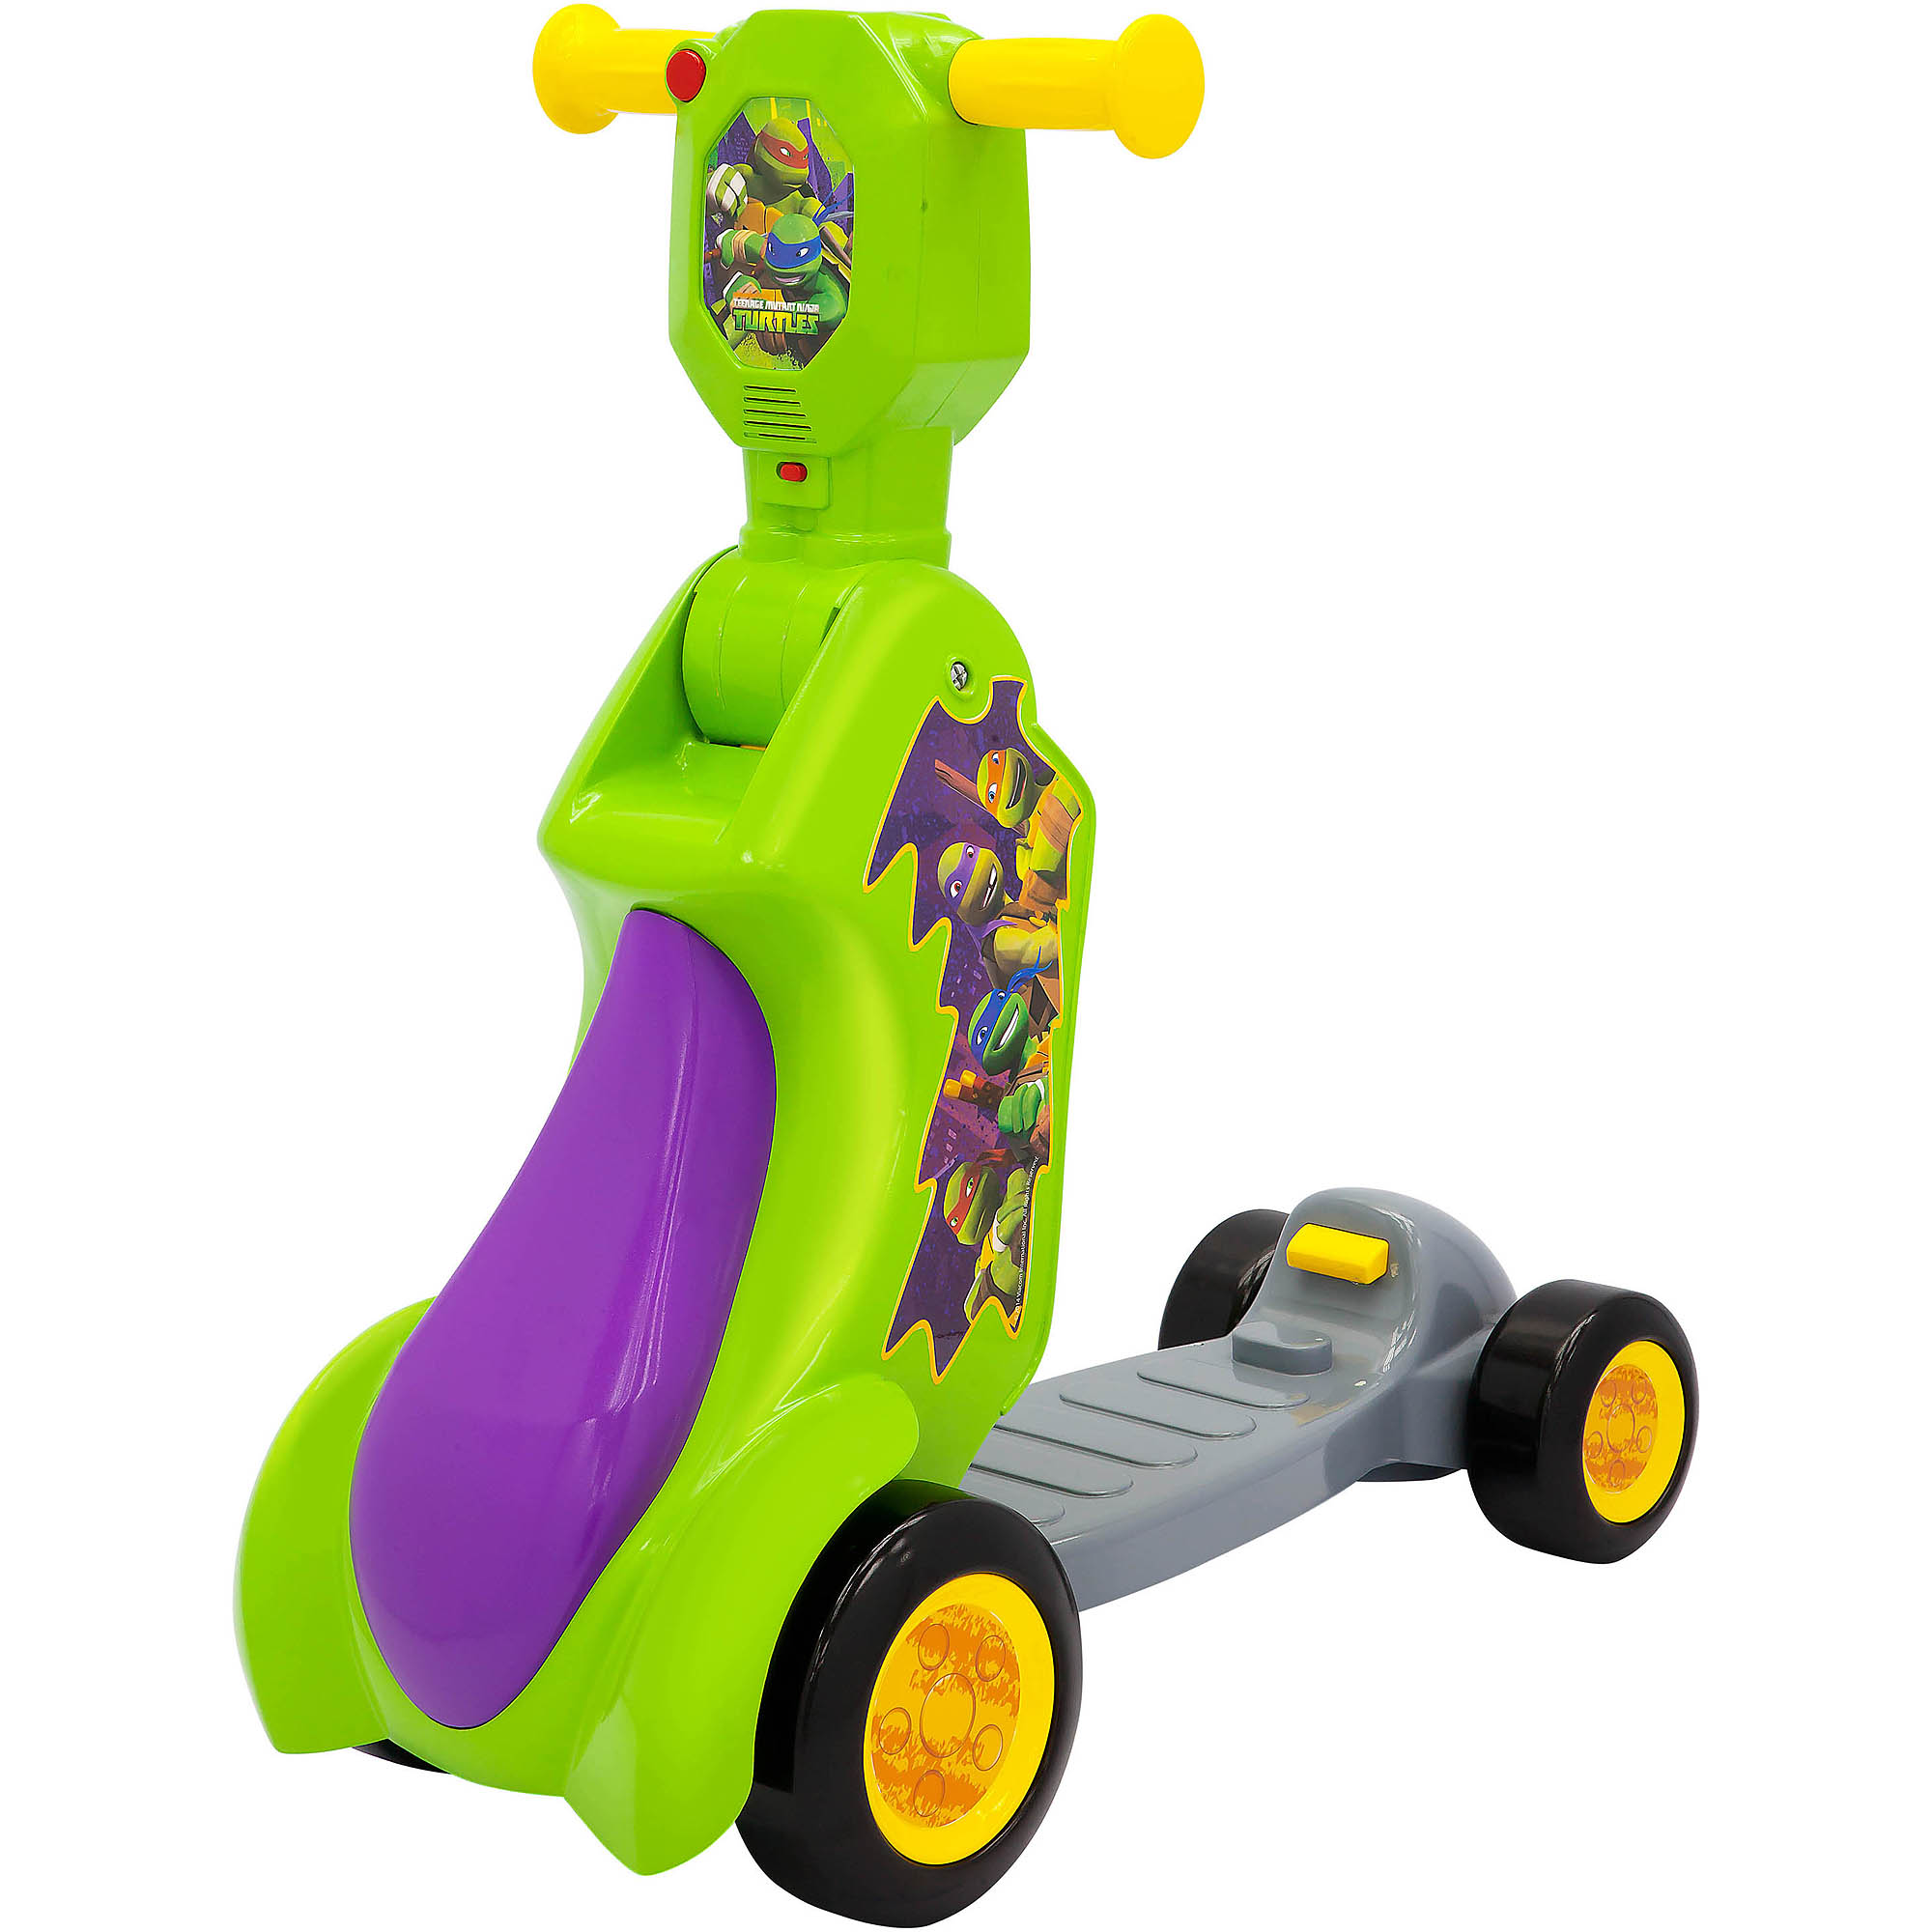 Nickelodeon Teenage Mutant Ninja Turtles Ride 2 Scoot by